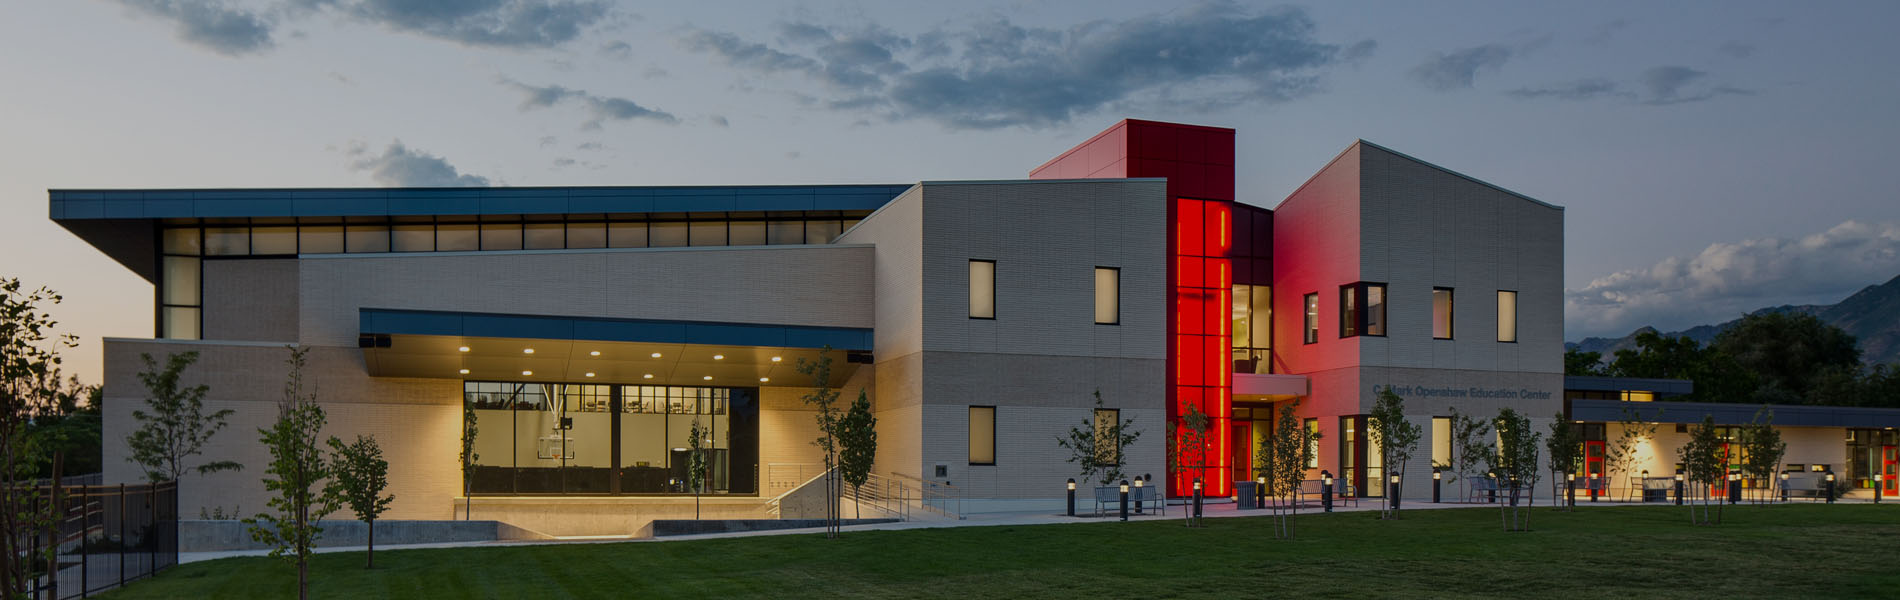 Marvelous Utah Schools For The Deaf And The Blind Jacoby Architects Home Interior And Landscaping Pimpapssignezvosmurscom